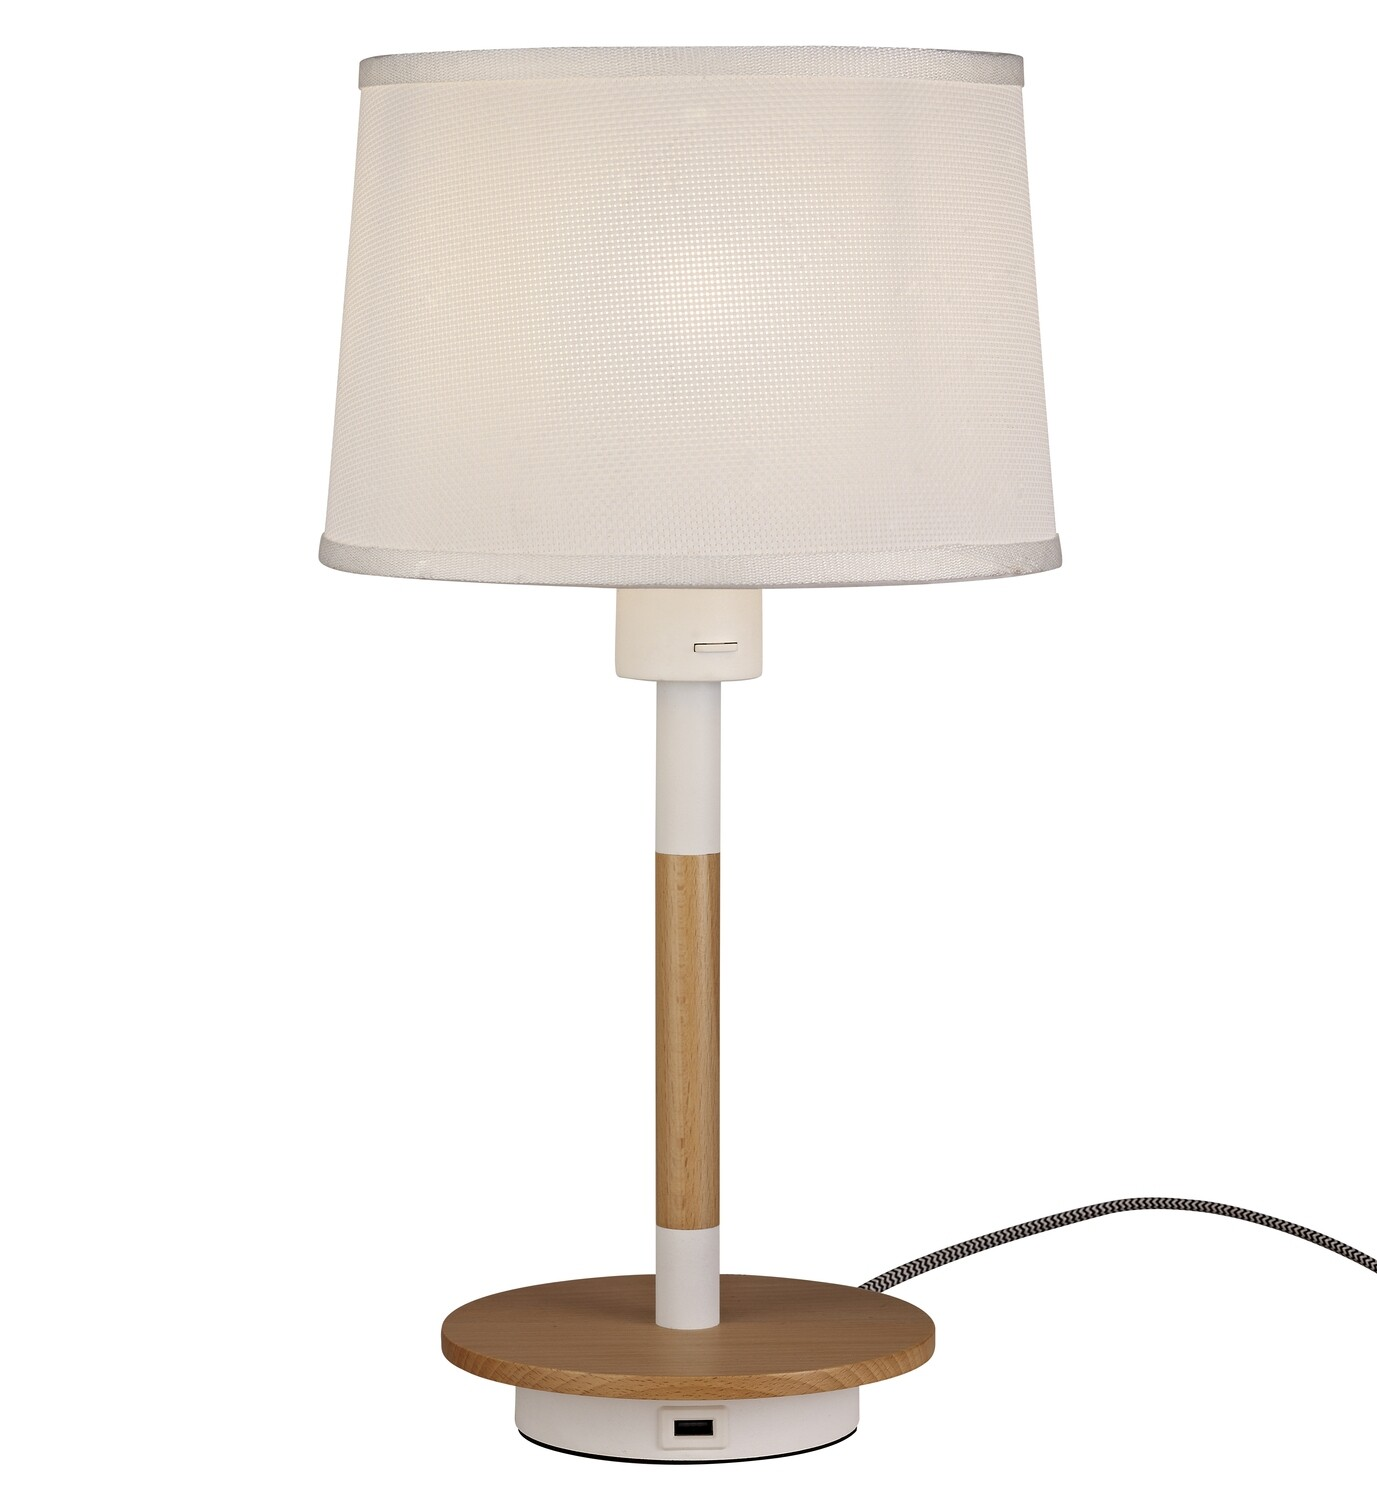 Nordica II Table Lamp With USB Socket, 1xE27, White/Beech With White Shade